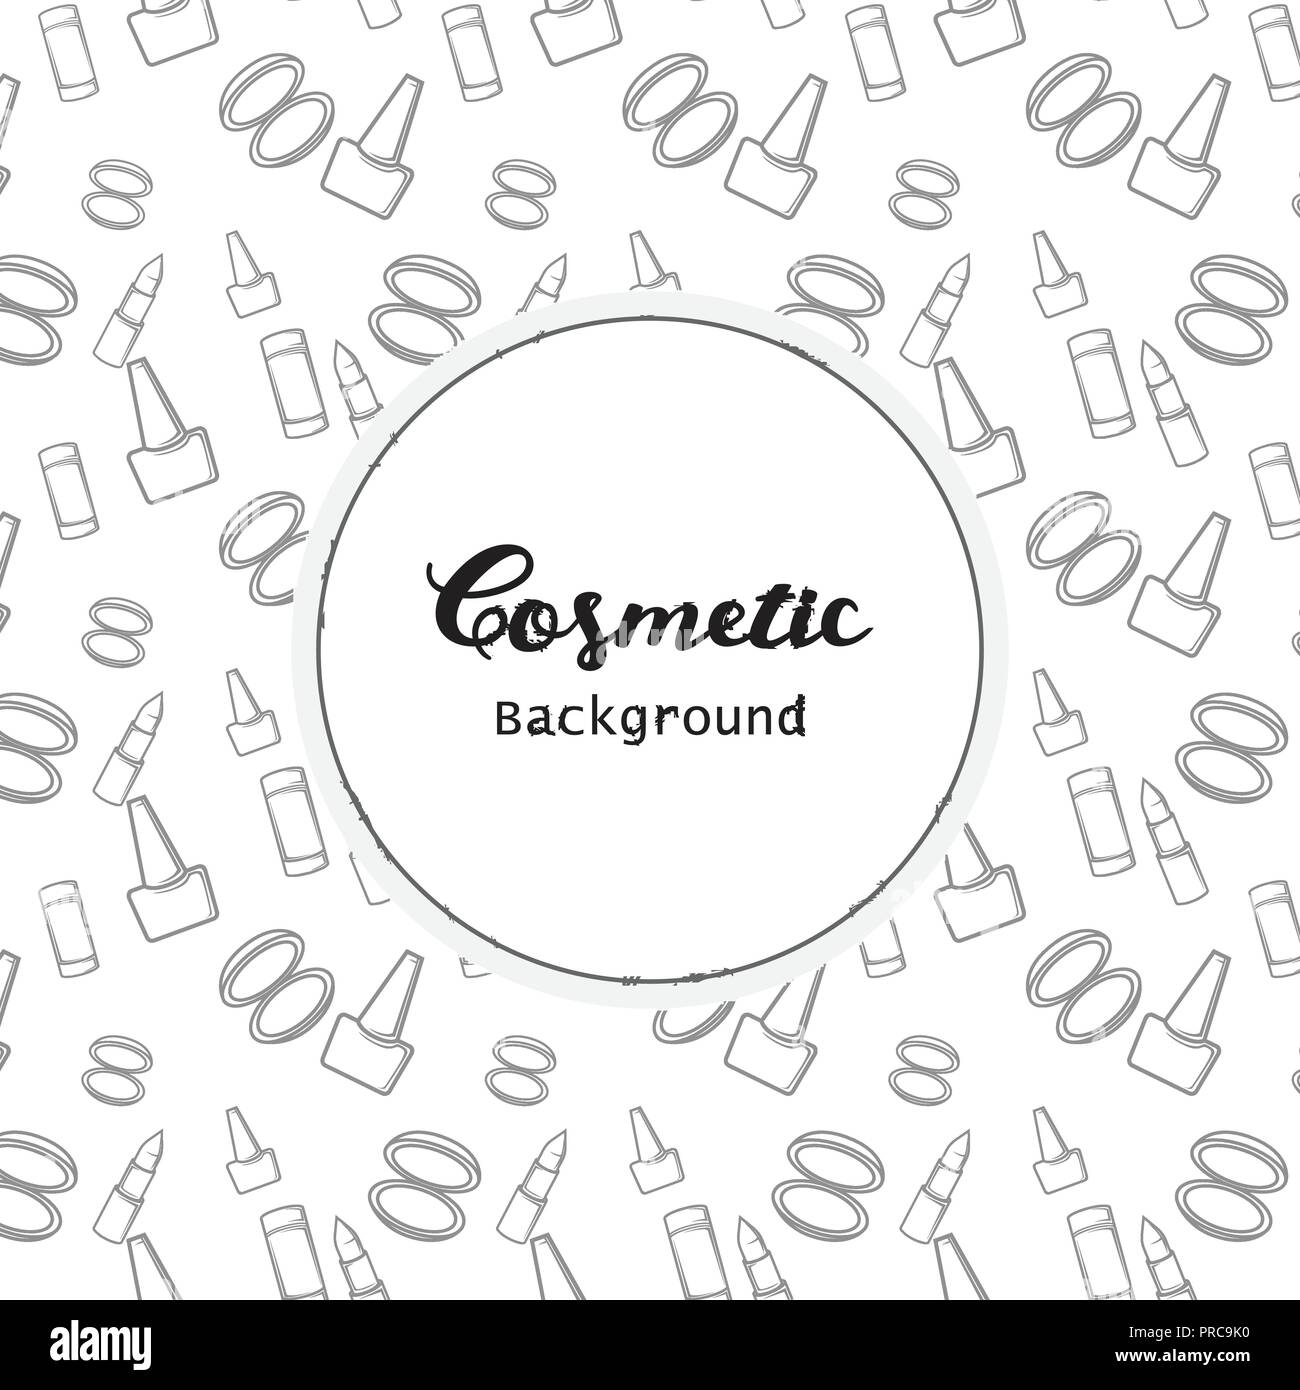 Cosmetic Background, Cosmetic Pattern Flat Lineart Icons Vector - Stock Image